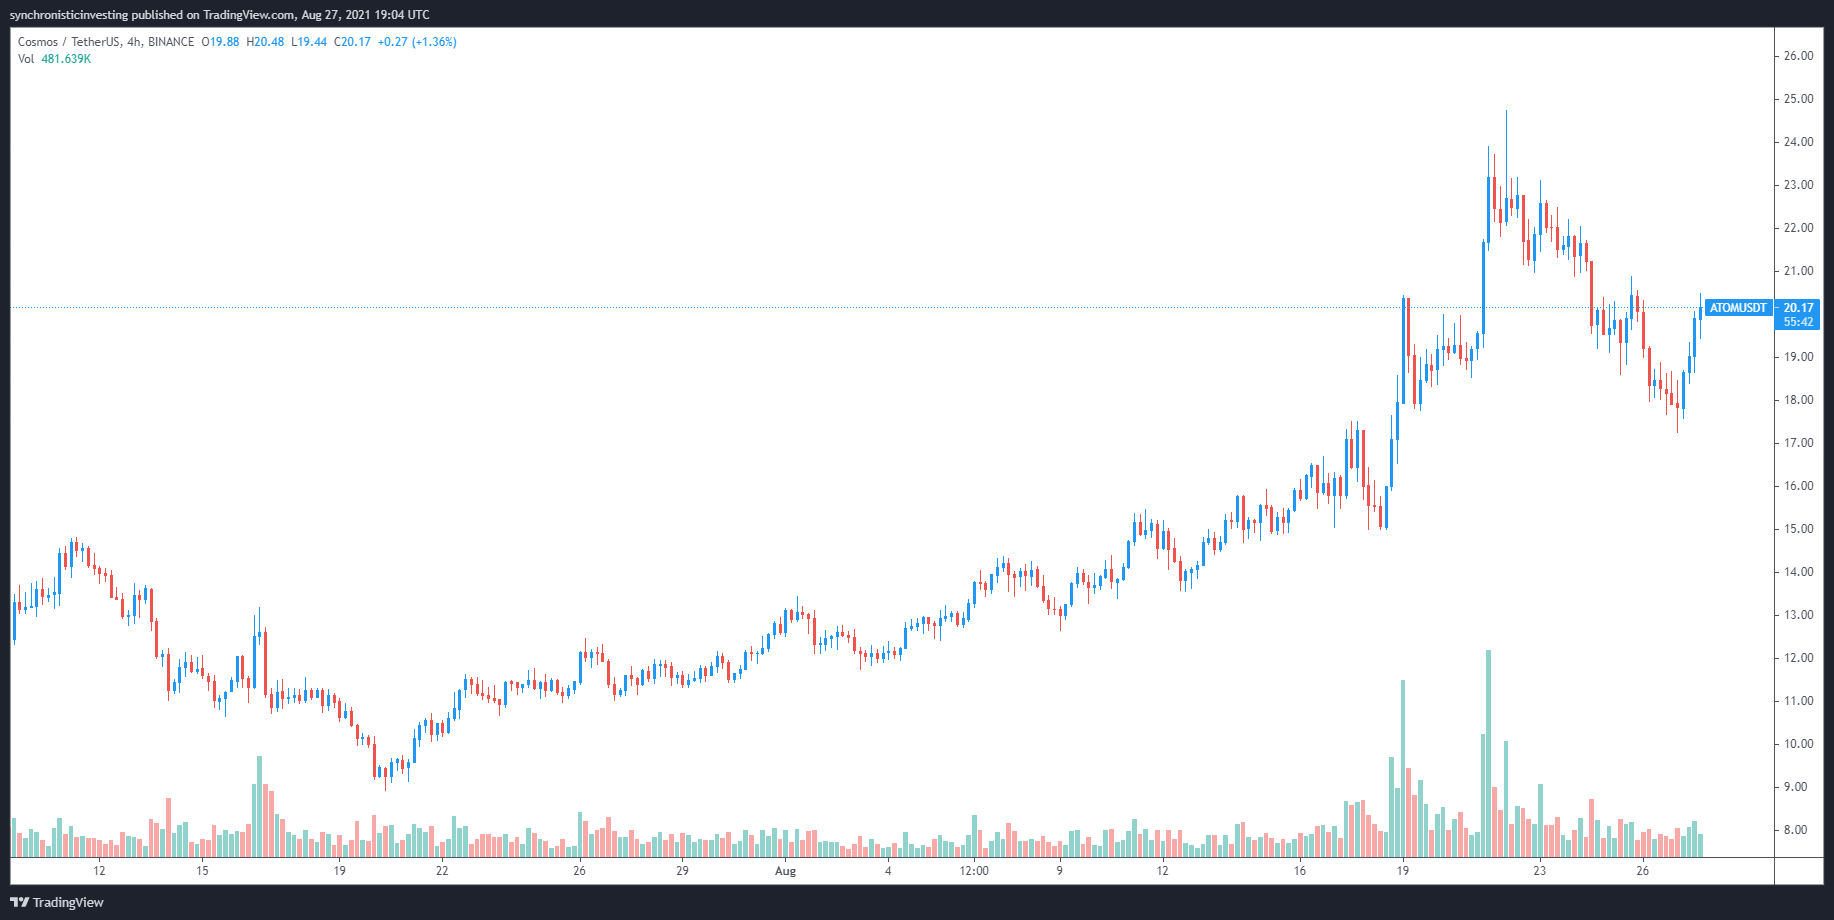 Cosmos (ATOM) rallies after launching a cross-chain bridge and wrapped Bitcoin